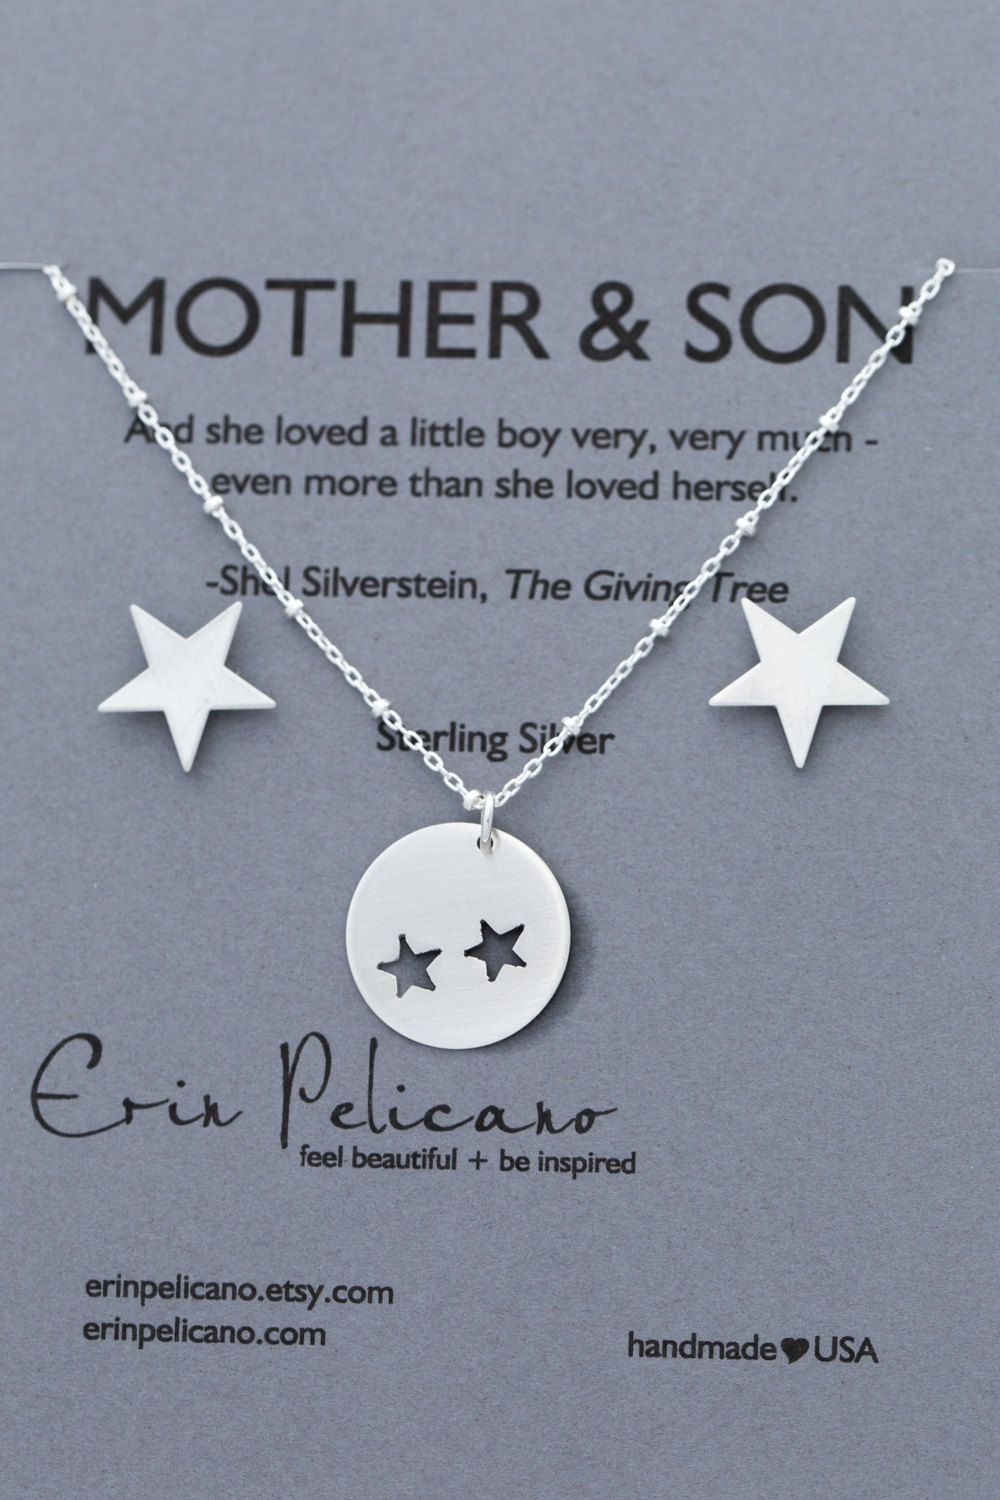 Mother Two Son Jewelry Inspirational Gift Mom By Erinpelicano